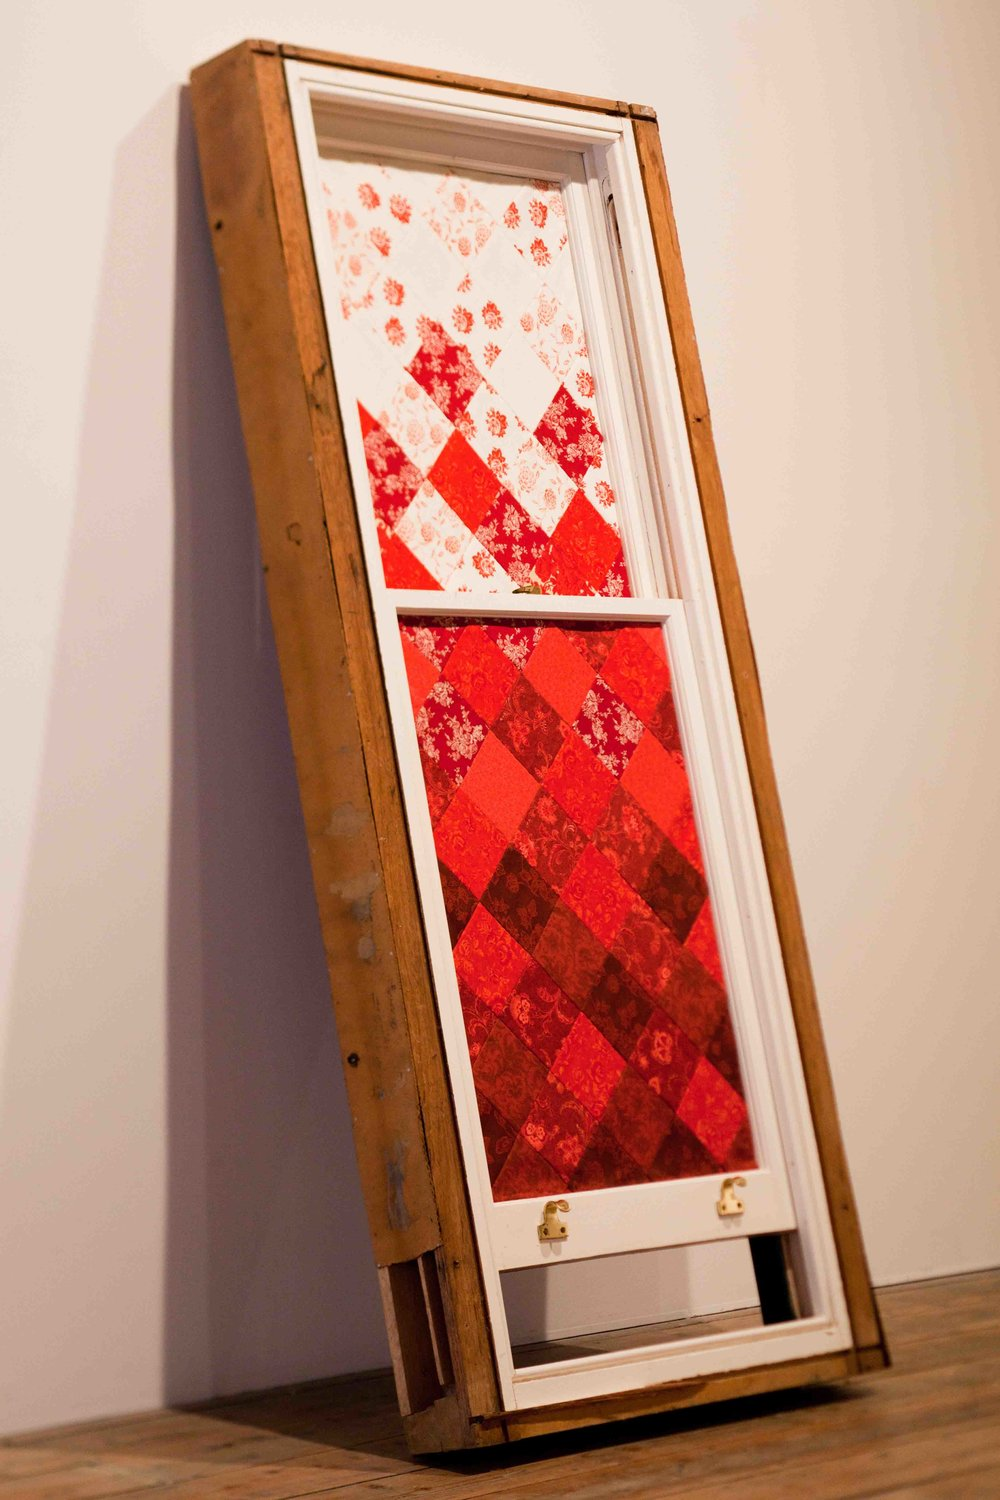 Julia Robinson,  Tint in crimson , 2011 (side view), window, fabric, thread, fixings, 1800 x 80 x 15cm